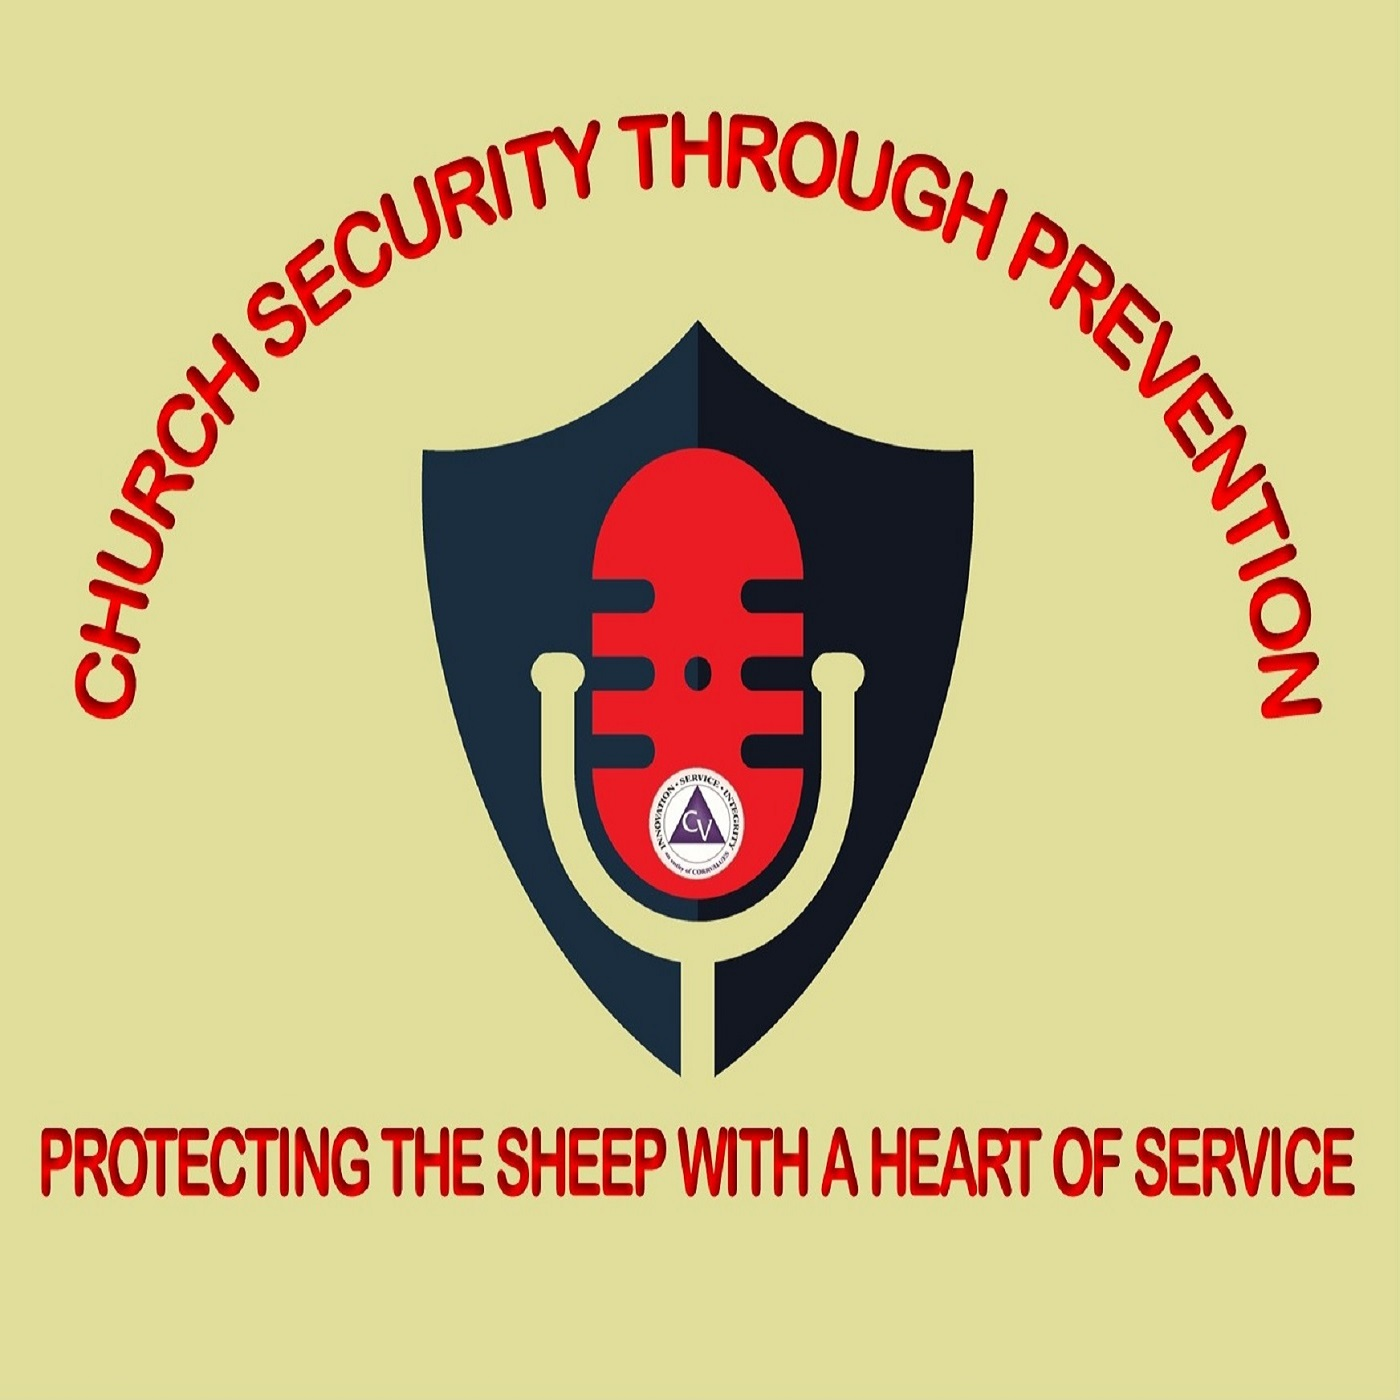 Church Security Certification  with Dr. Dave Stephens show art